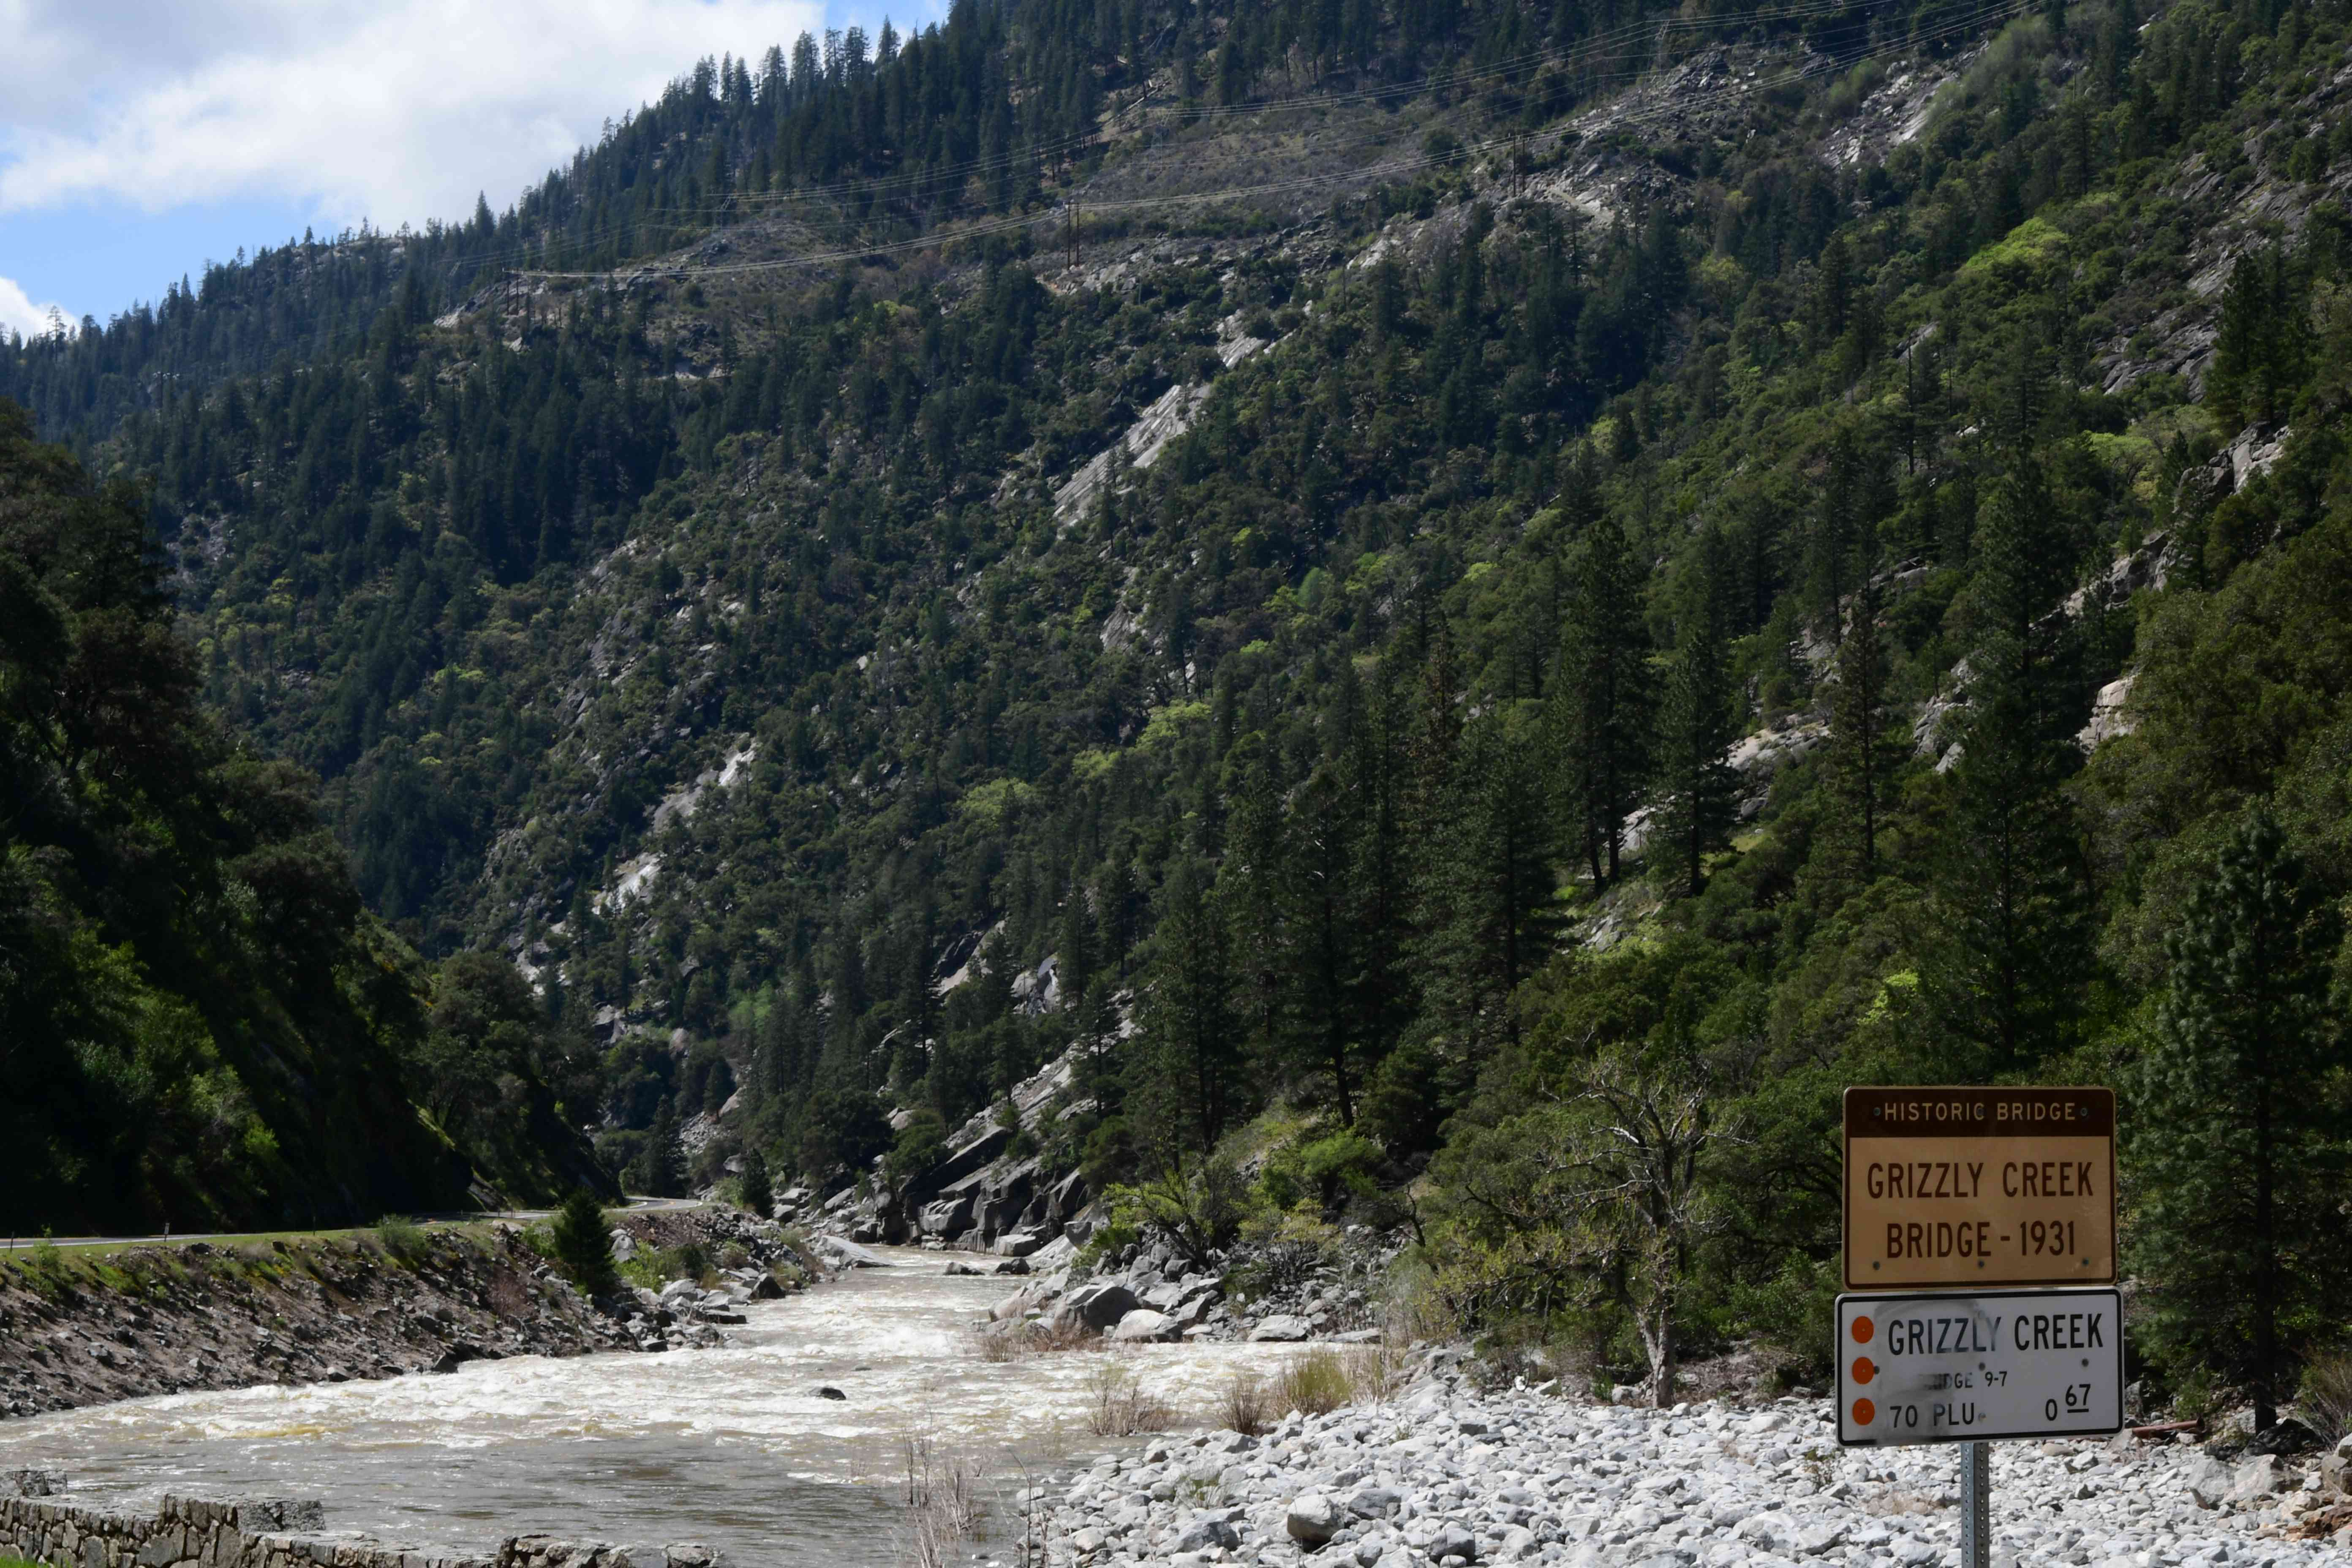 Feather River at Grizzly Creek along the Feather River Canyon